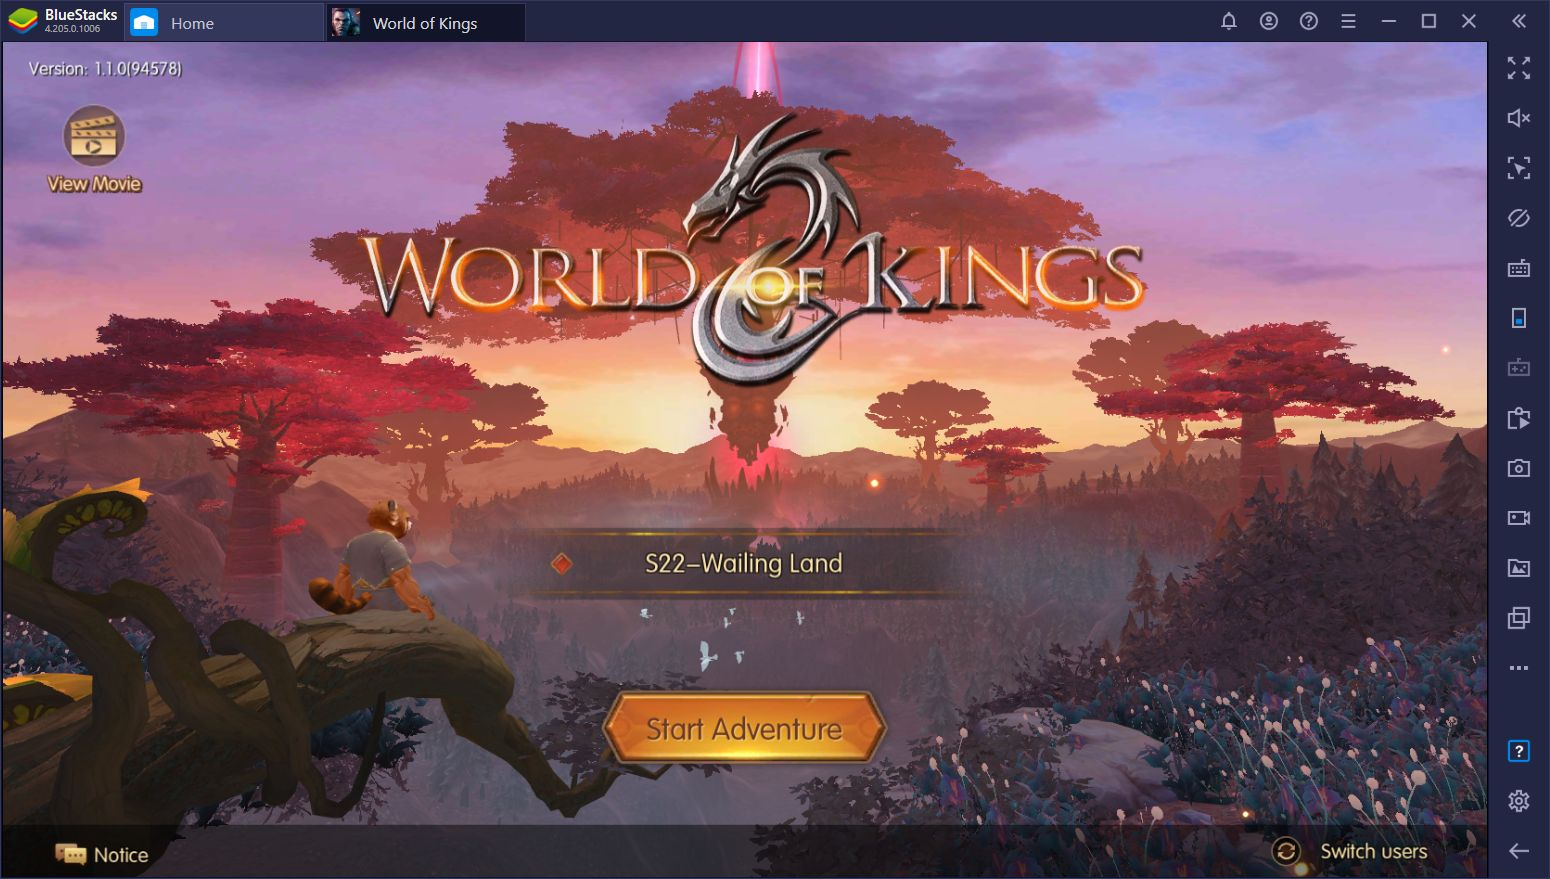 World of Kings on PC – Conquer This RPG With Guides on Gameplay, Classes, Combat and More